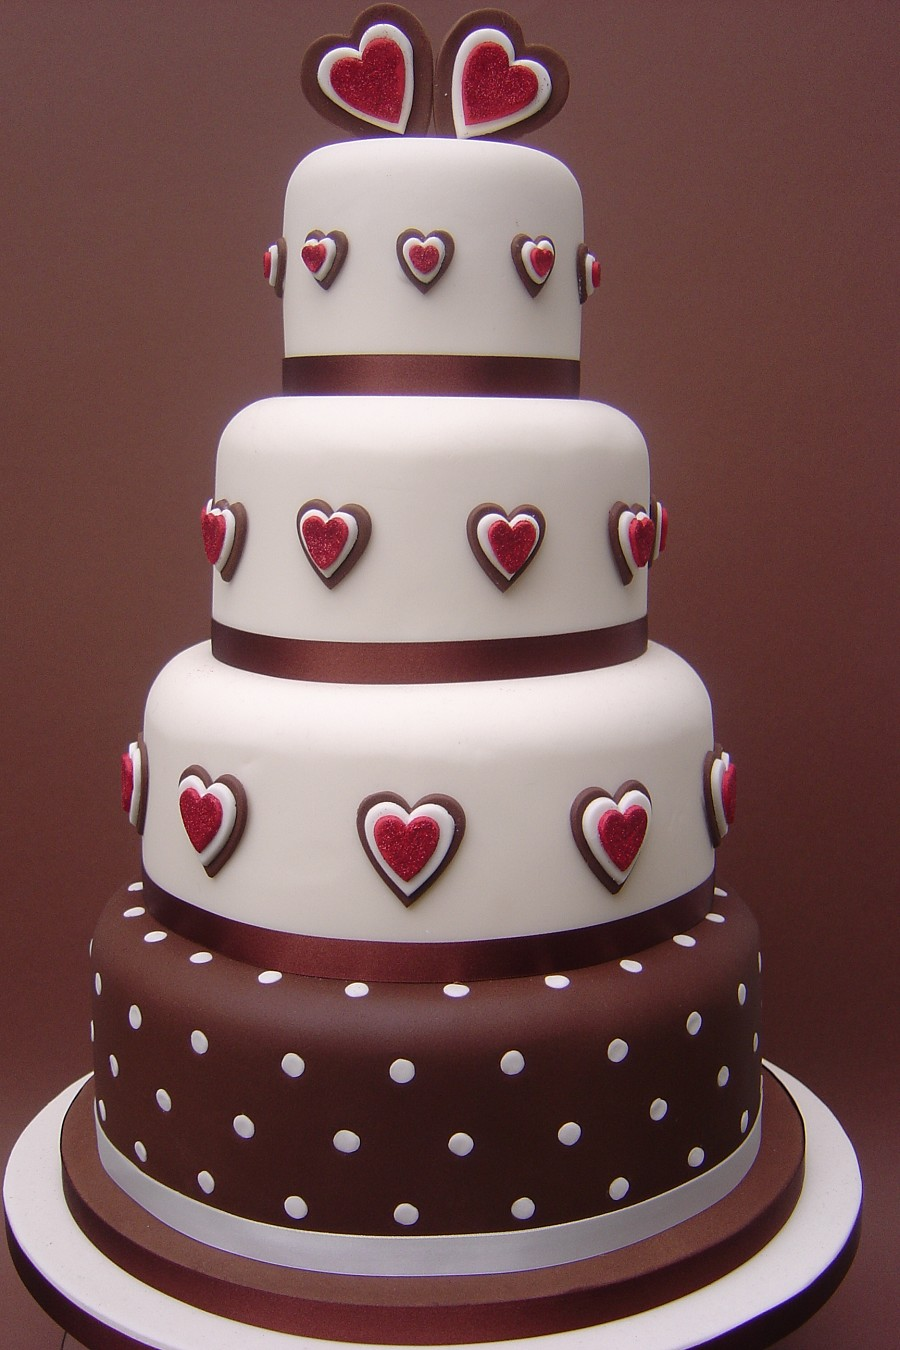 Cake Images With S : Wedding cake Ideas collection